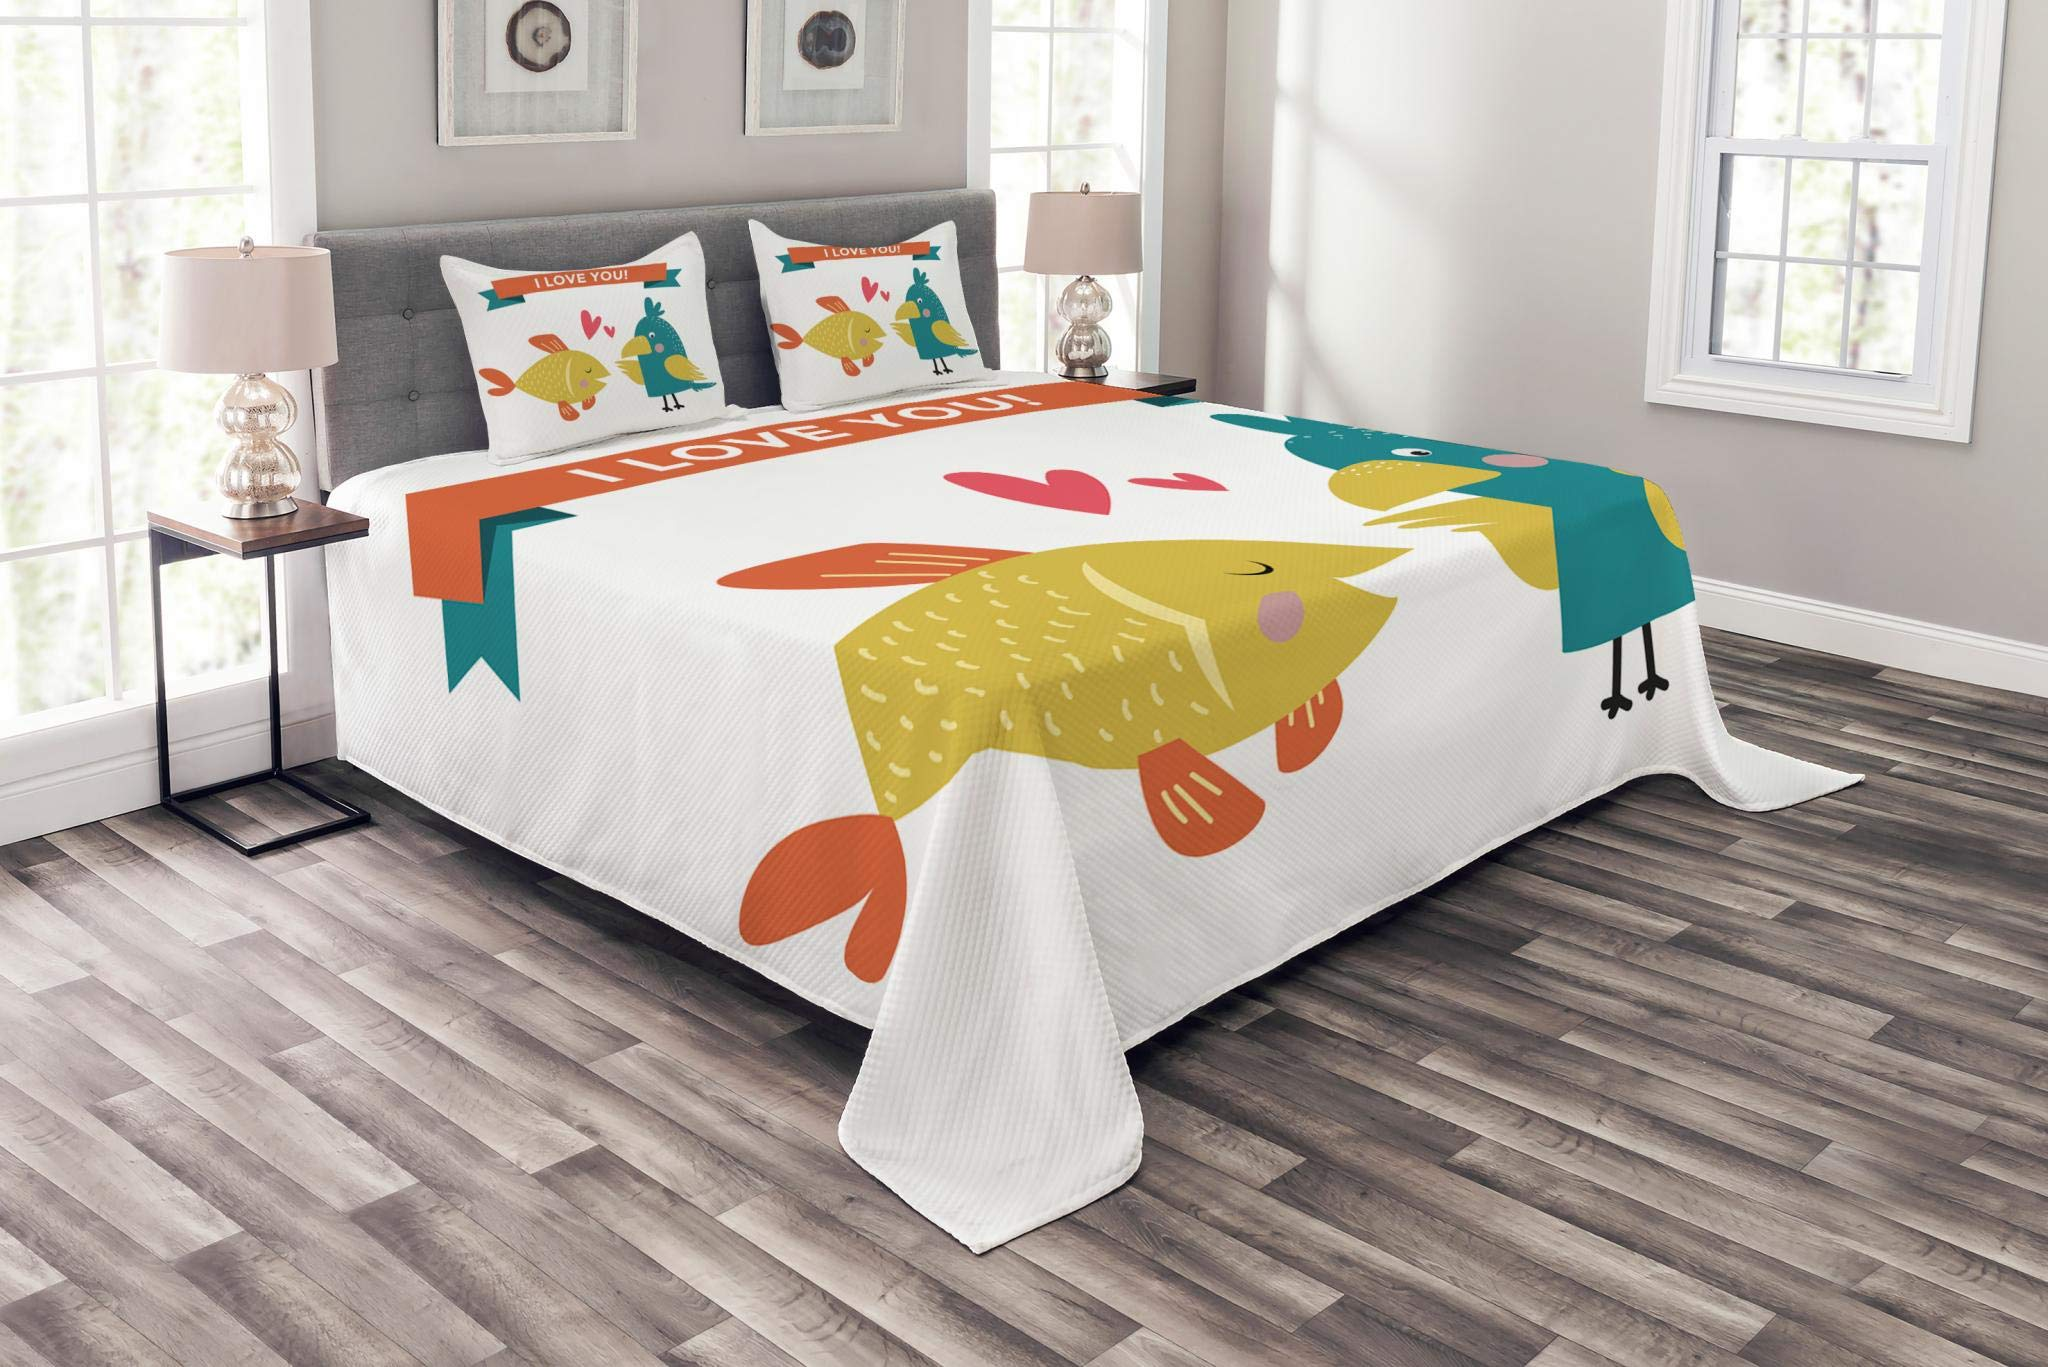 Lunarable Animals Bedspread Set Queen Size, Fish Parrot Conflicting Feelings Animal Soulmates Caring Each Other, Decorative Quilted 3 Piece Coverlet Set with 2 Pillow Shams, Teal Dark Orange Mustard